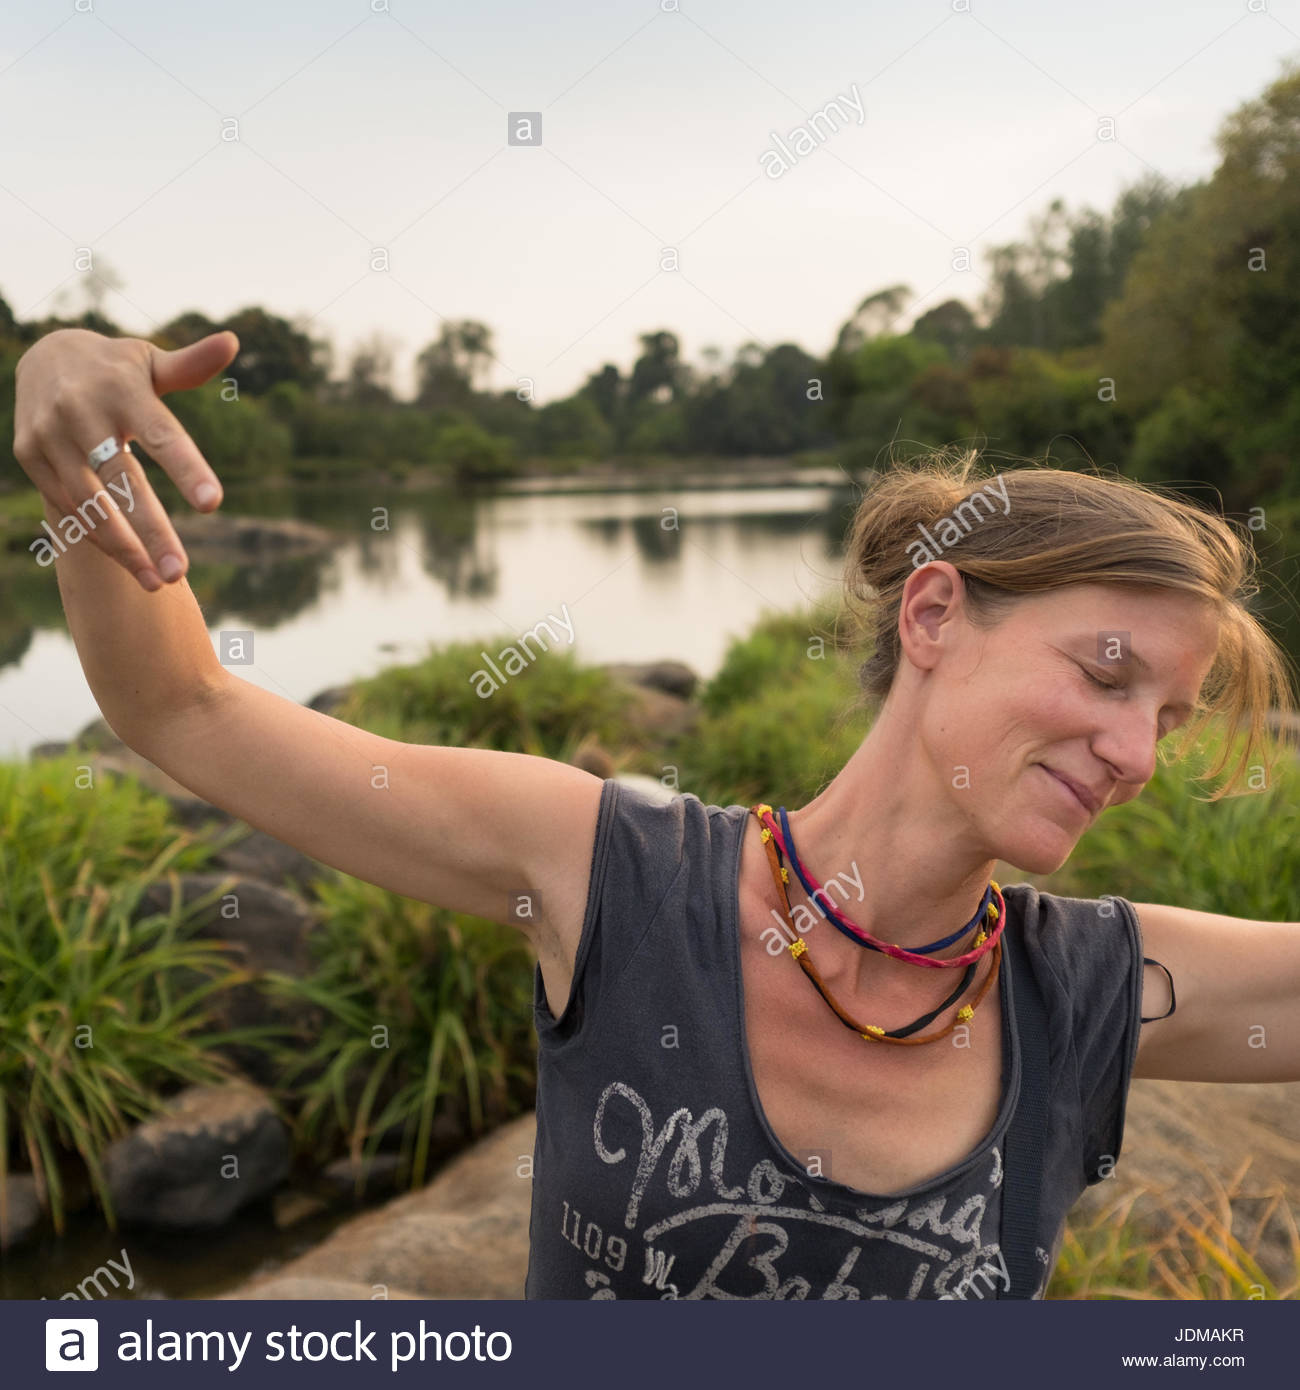 A German woman dances in the outdoors. - Stock Image